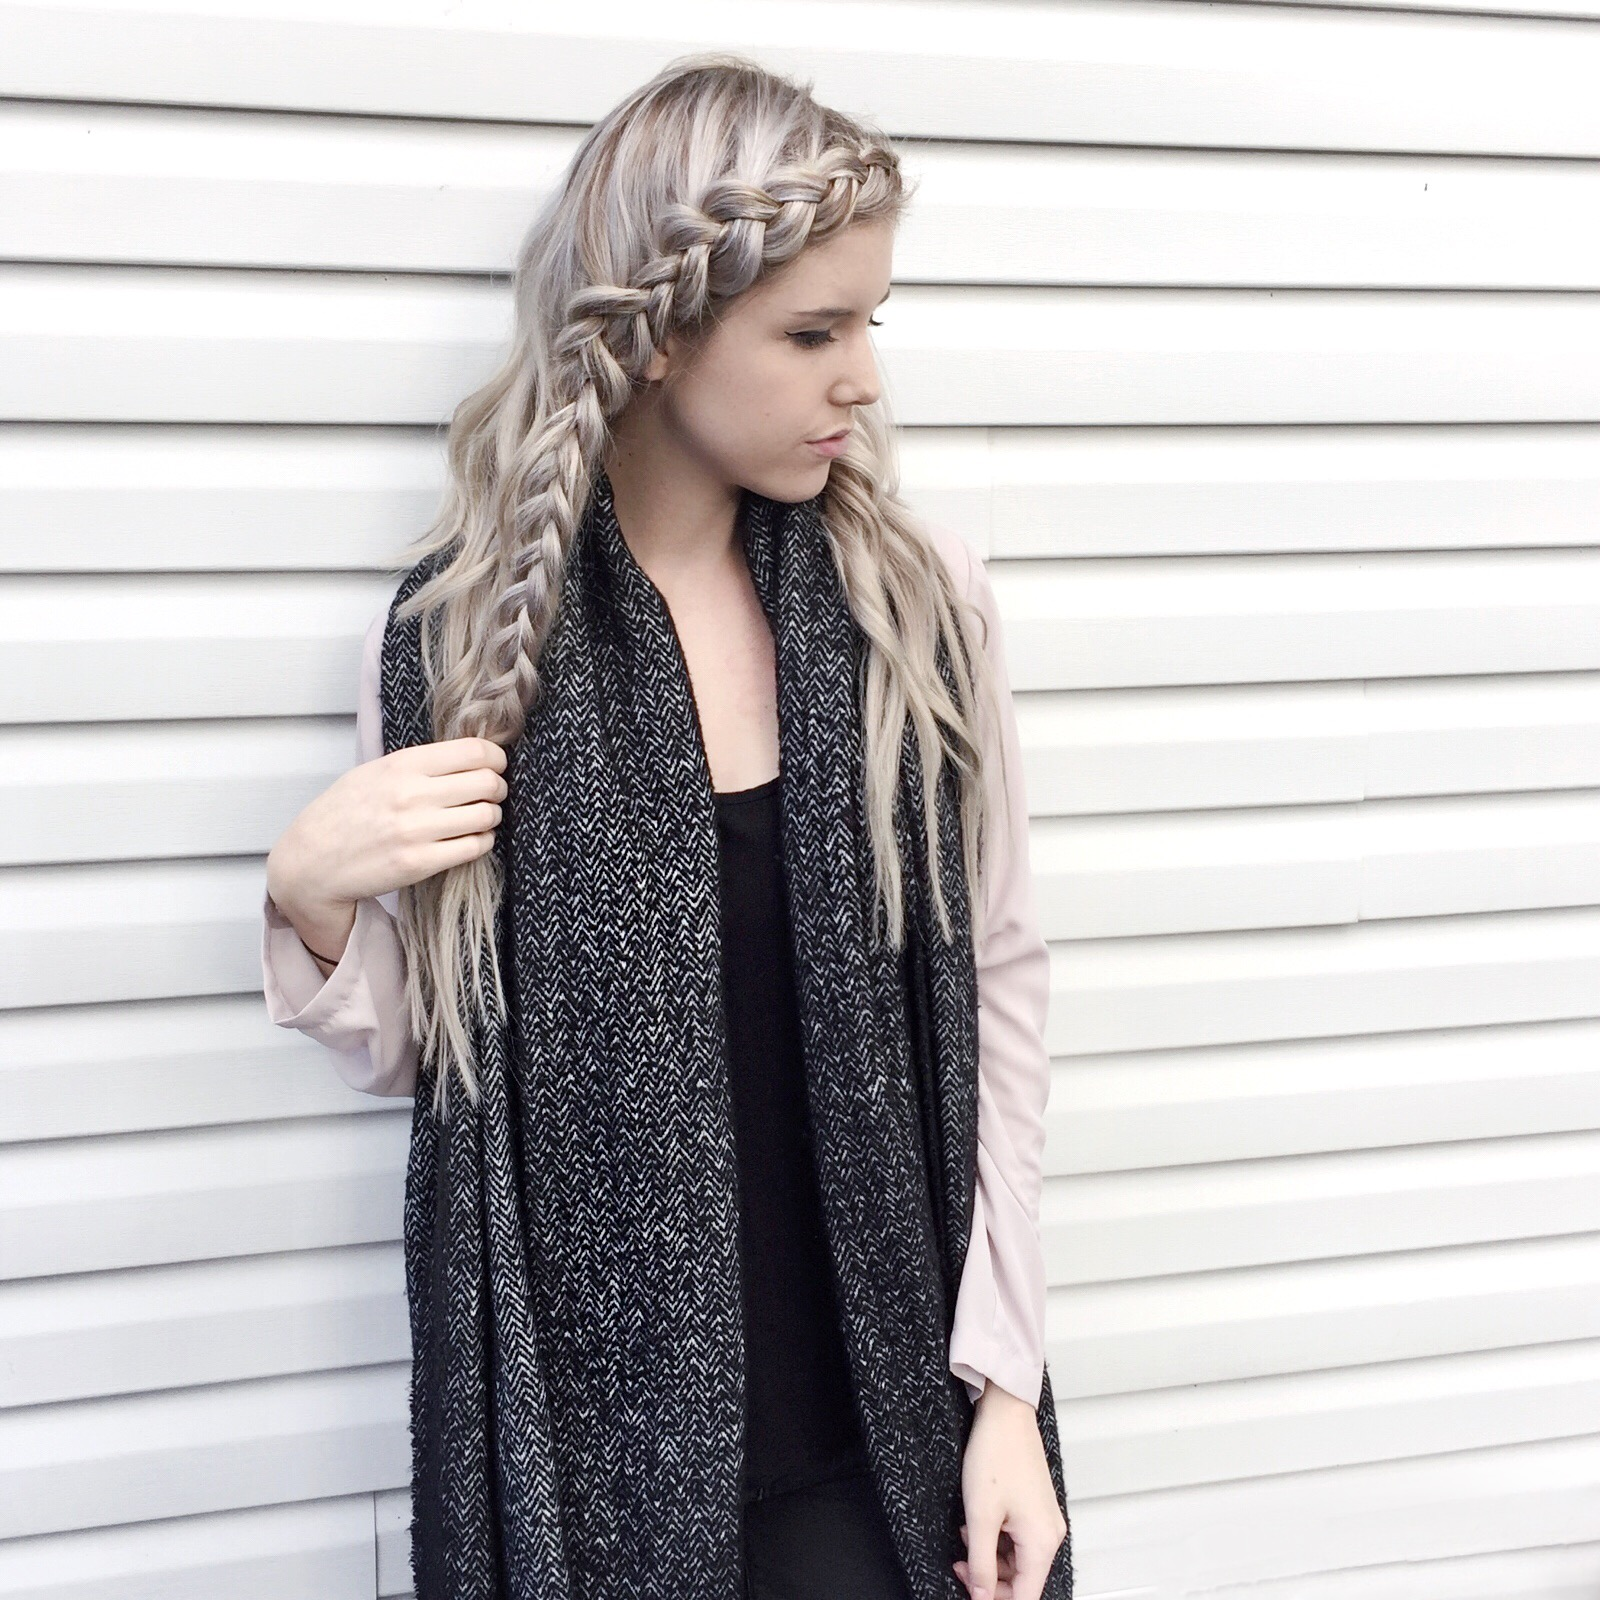 Luxy Hair Extensions Review Prices Of Remy Hair